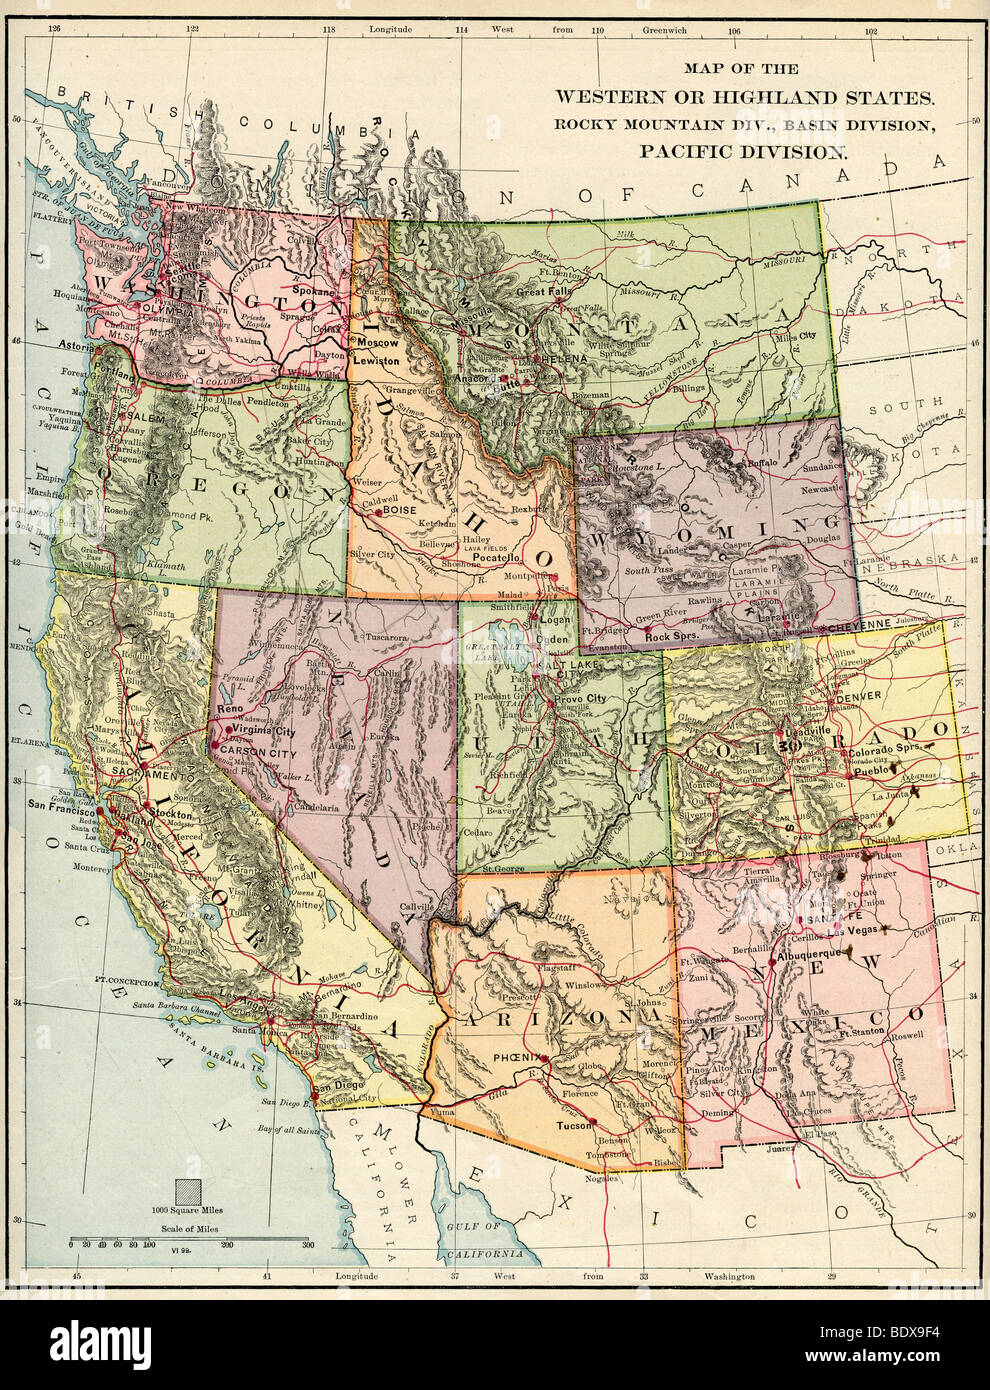 United States Maps Old Stock Photos & United States Maps Old Stock on old maps of greenland, old maps of nepal, old maps of the bahamas, old maps of the netherlands, old maps of slovakia, old maps of the midwest, old maps of the southwest, old maps of bolivia, old maps of albania, old us map, antique map united states, old maps of the american revolution, old maps of latin america, vintage wall map united states, old maps of the east coast, old maps of azerbaijan, old maps of guam, old maps of the americas, native american tribes map united states, old united states of america,